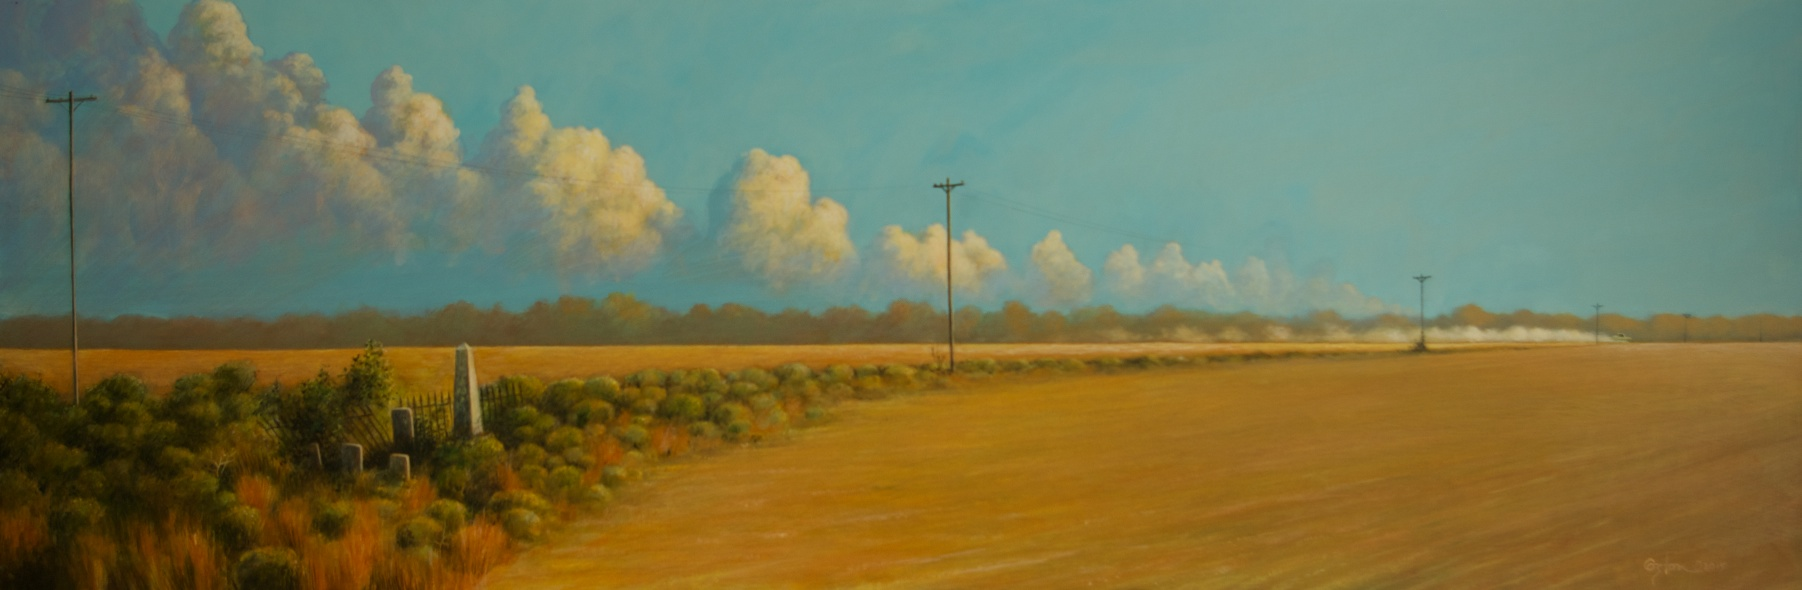 Daniel Coston, Arkansas artist